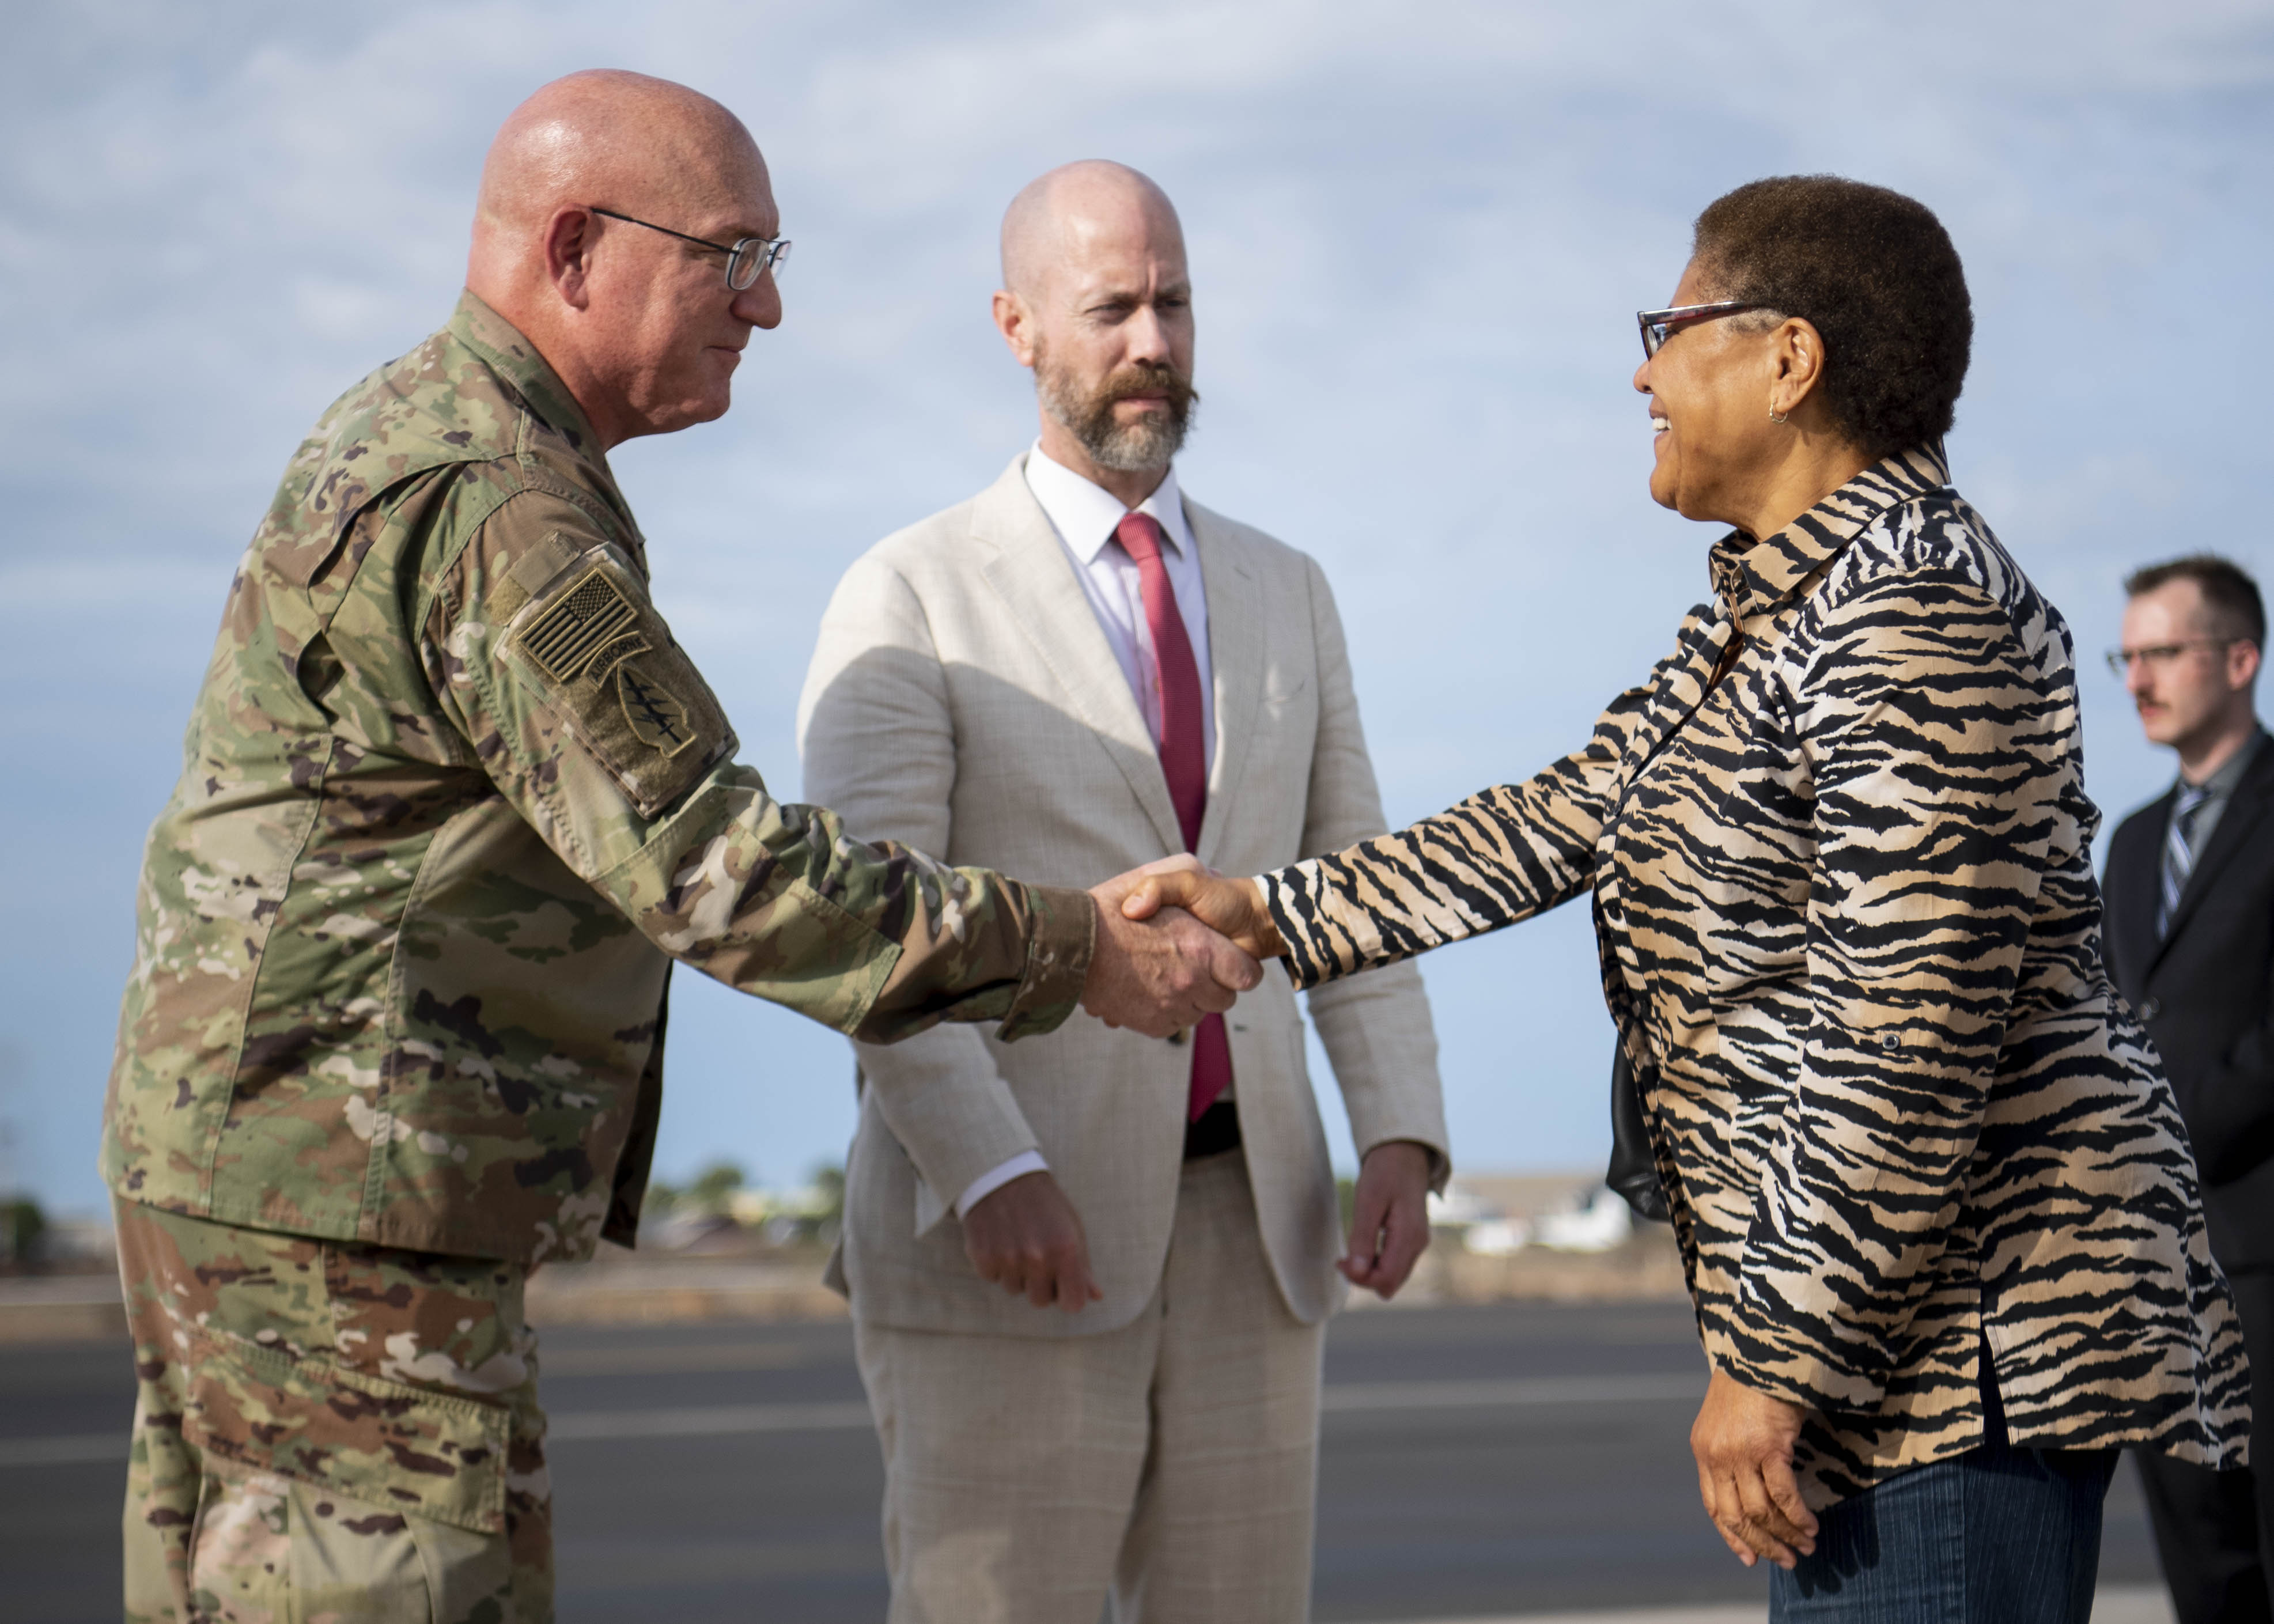 U.S. Army Maj. Gen. Michael Turello, commanding general, Combined Joint Task Force-Horn of Africa (CJTF-HOA), greets Rep. Karen Bass (D-Calif.) at Camp Lemonnier, Djibouti, Oct. 1, 2019. Bass visited Djibouti to promote U.S. Government and host nation partnerships in the region. (U.S. Air Force photo by Staff Sgt. J.D. Strong II)